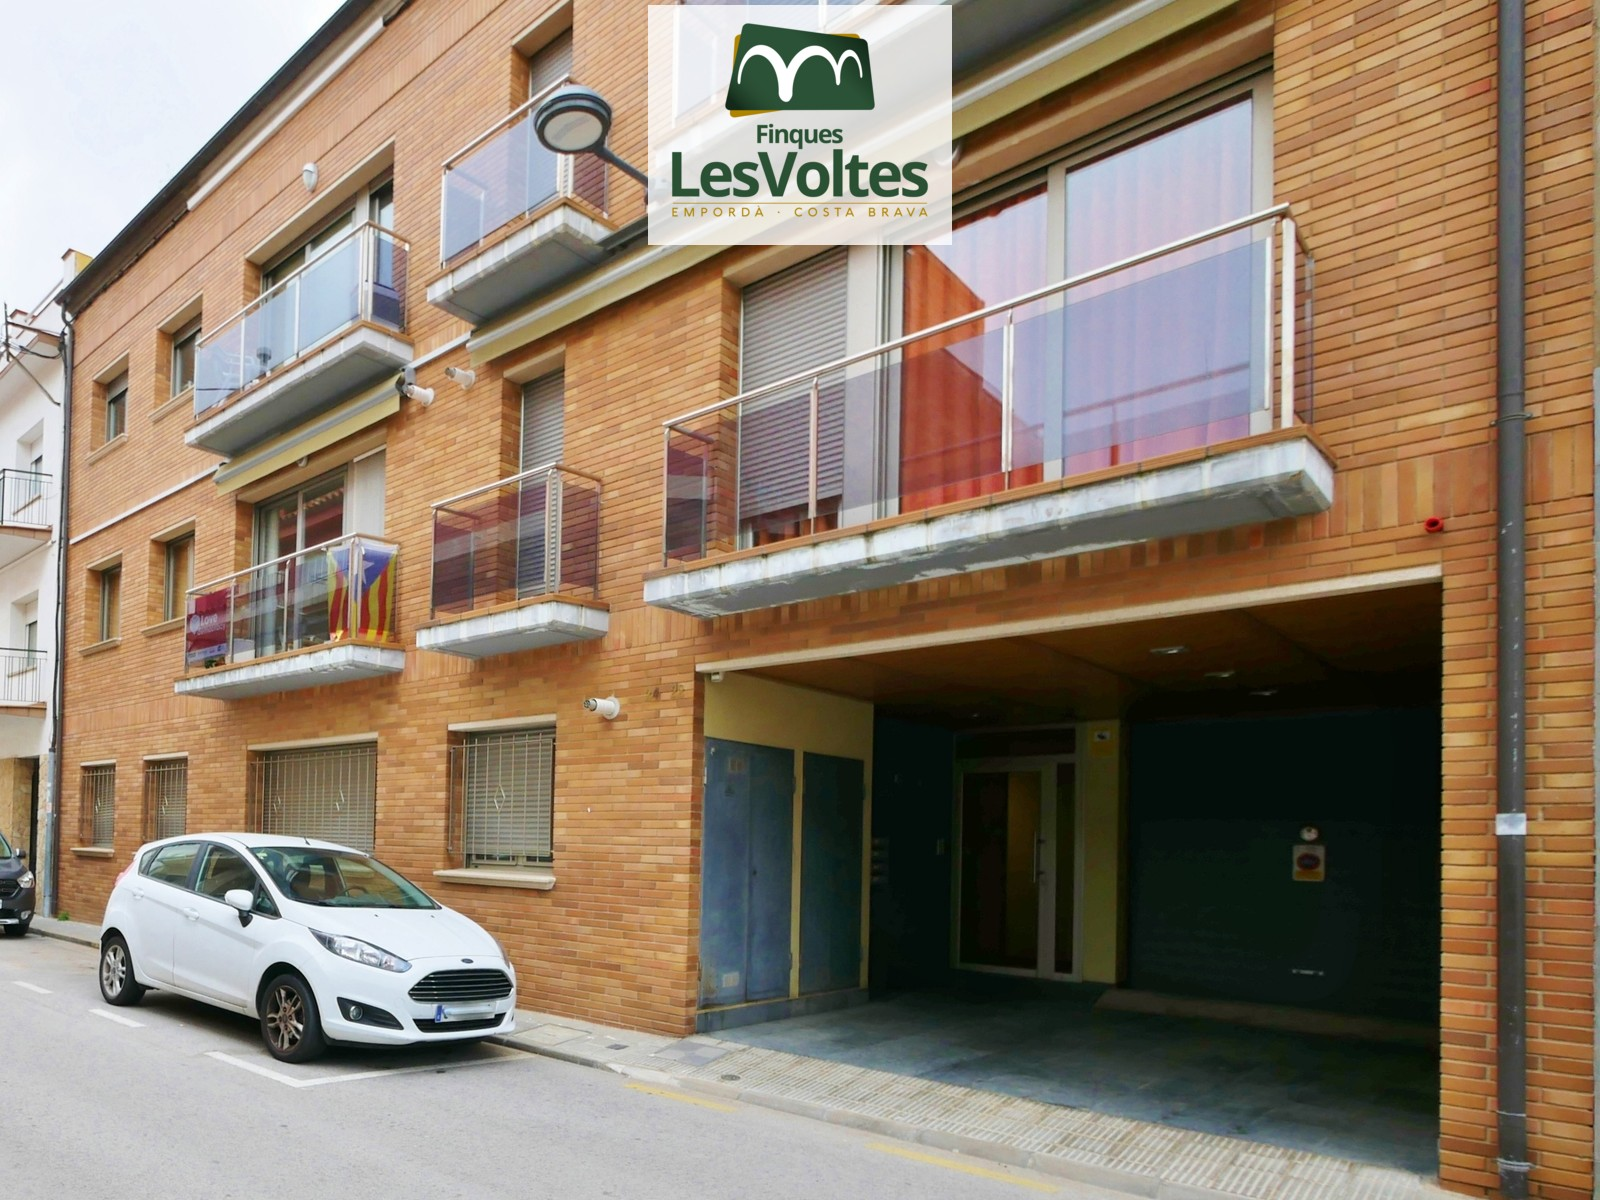 2 BEDROOM GROUND FLOOR APARTMENT FOR SALE IN PALAMÓS. EASY ACCESS AND WELL COMMUNICATED AREA NEAR THE CENTER